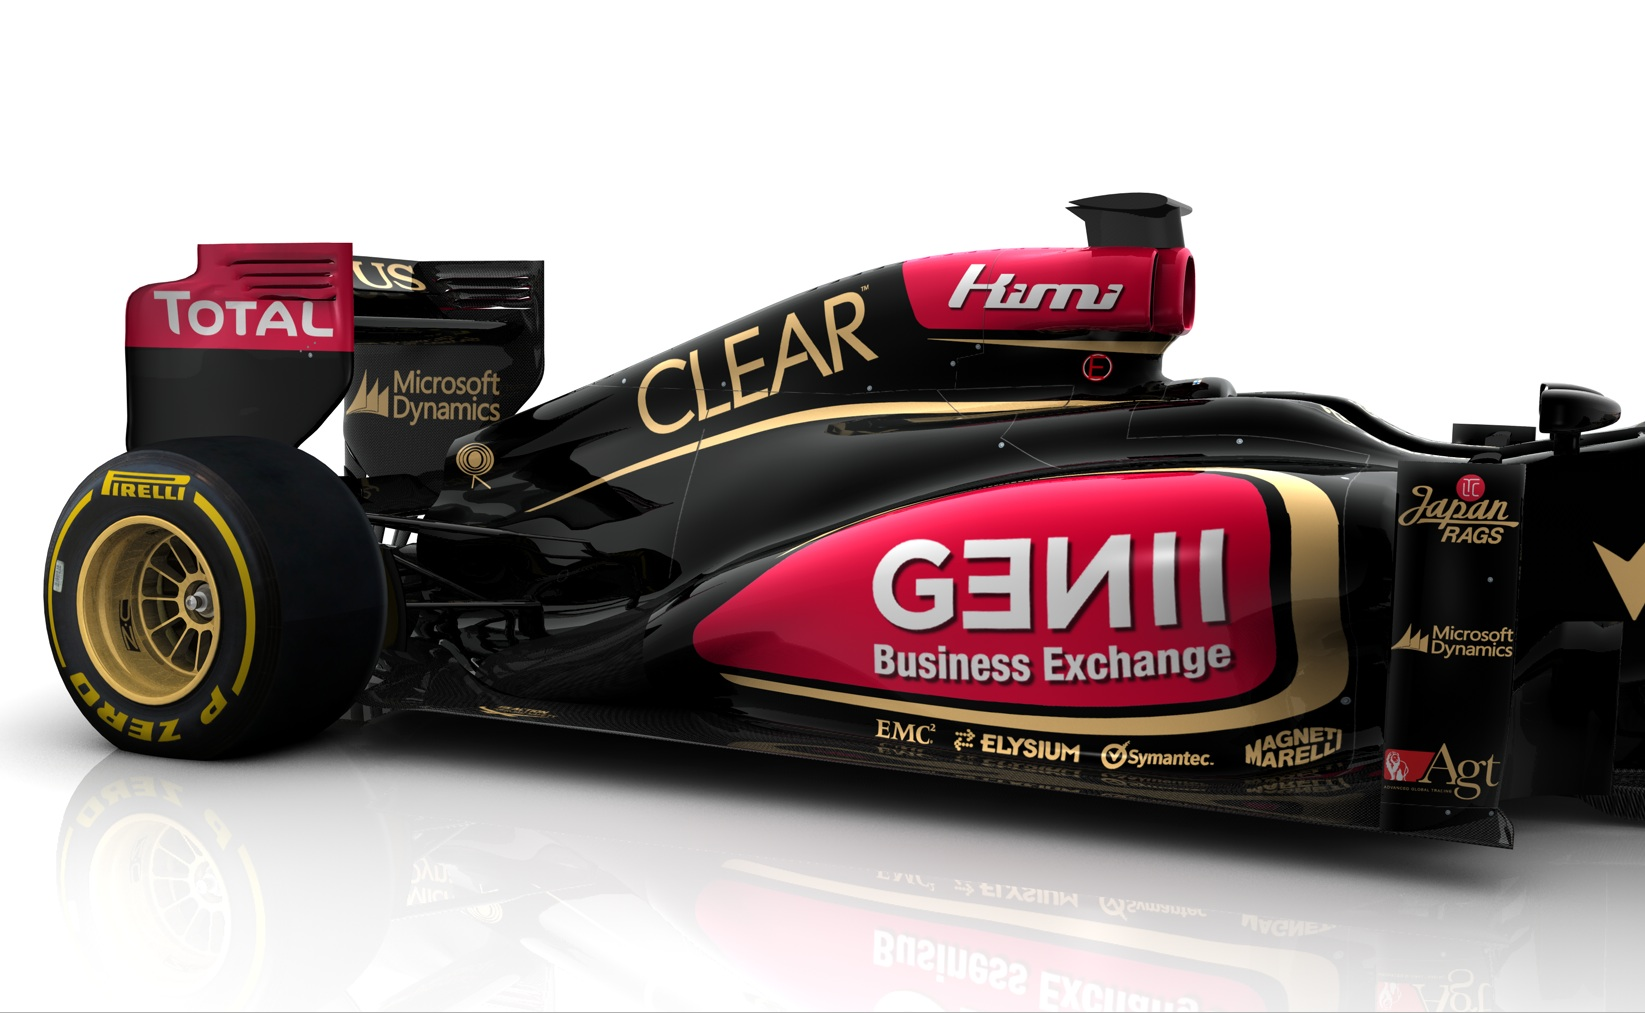 The upcoming Lotus F-1 car will look like this -- complete with EMC, Microsoft and Symantec decals.